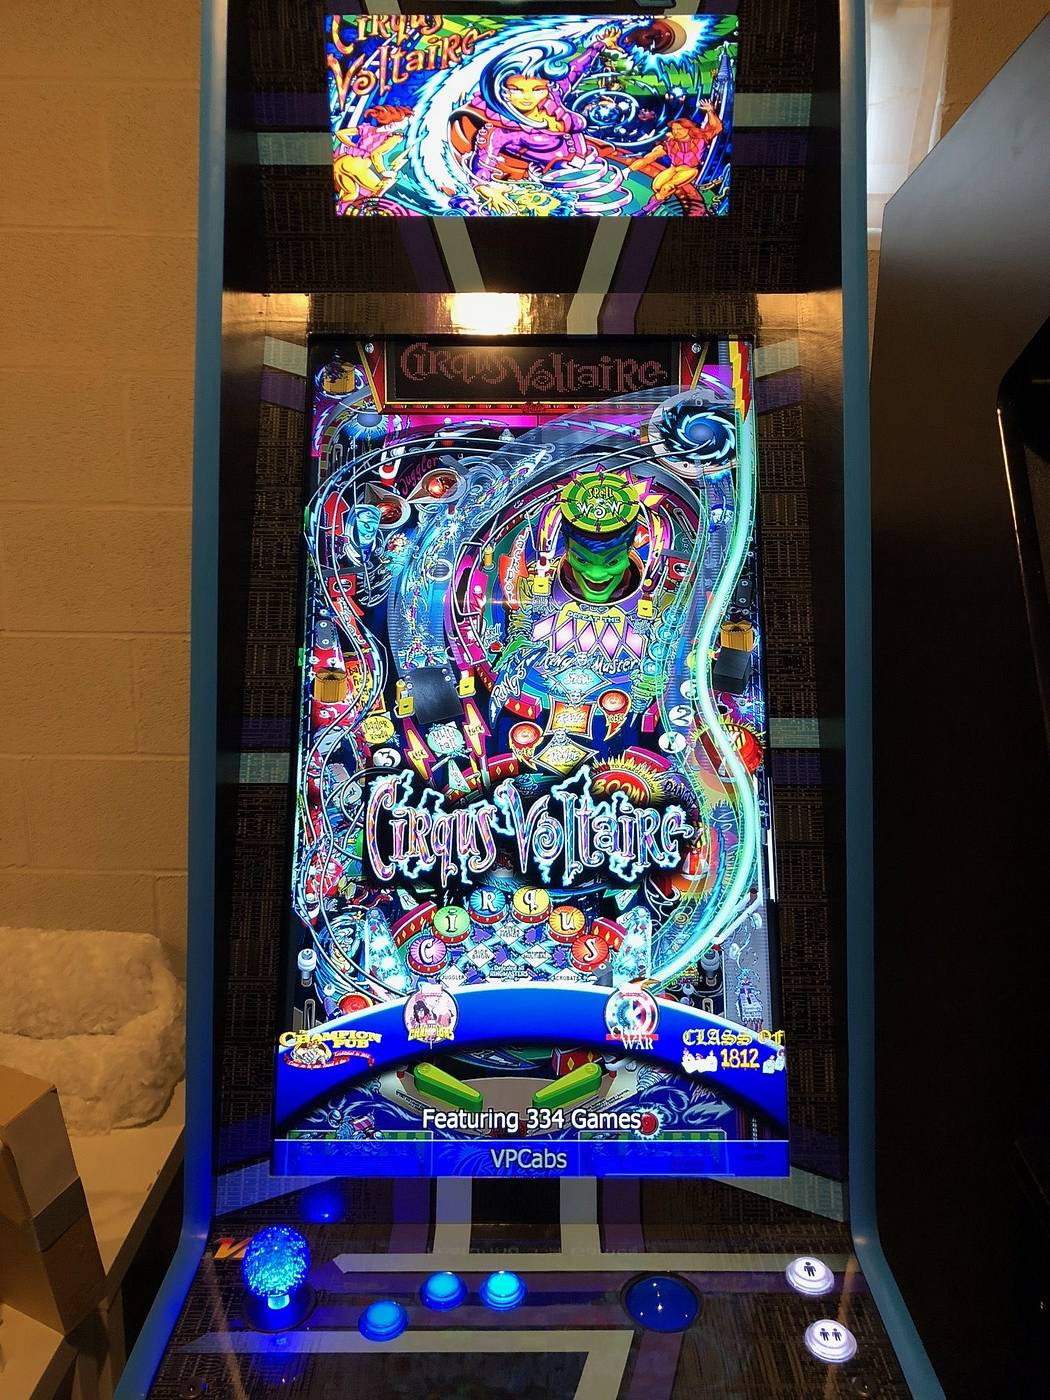 VP Cabs Vertigo Virtual Pinball - for trade | Pinside Market